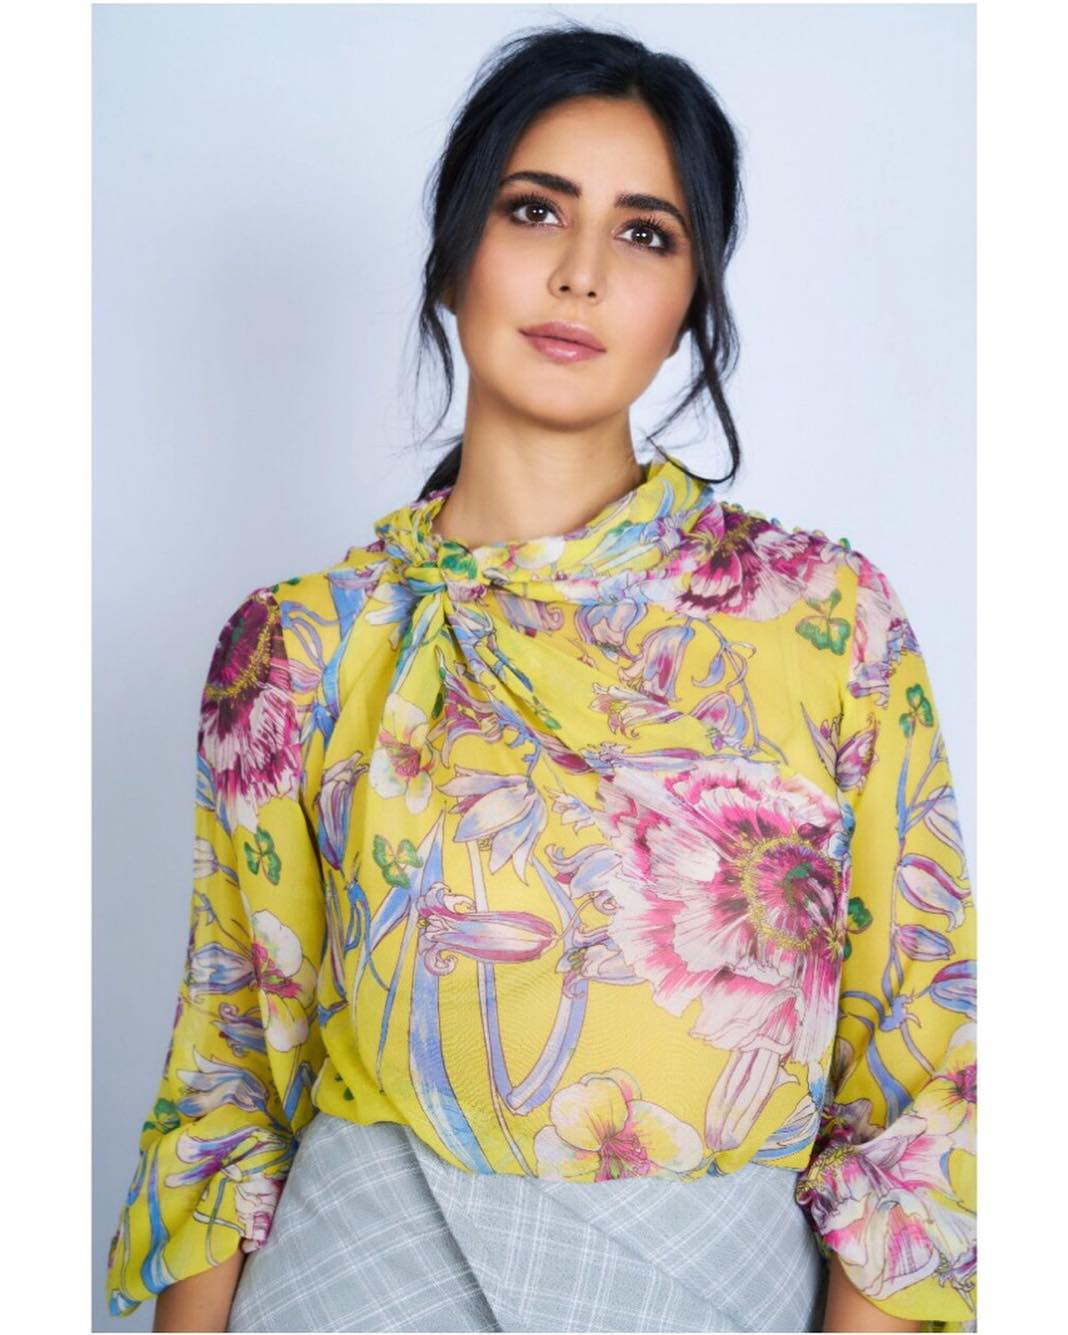 3-katrina-kaif-floral-top-by-prabal-gurung